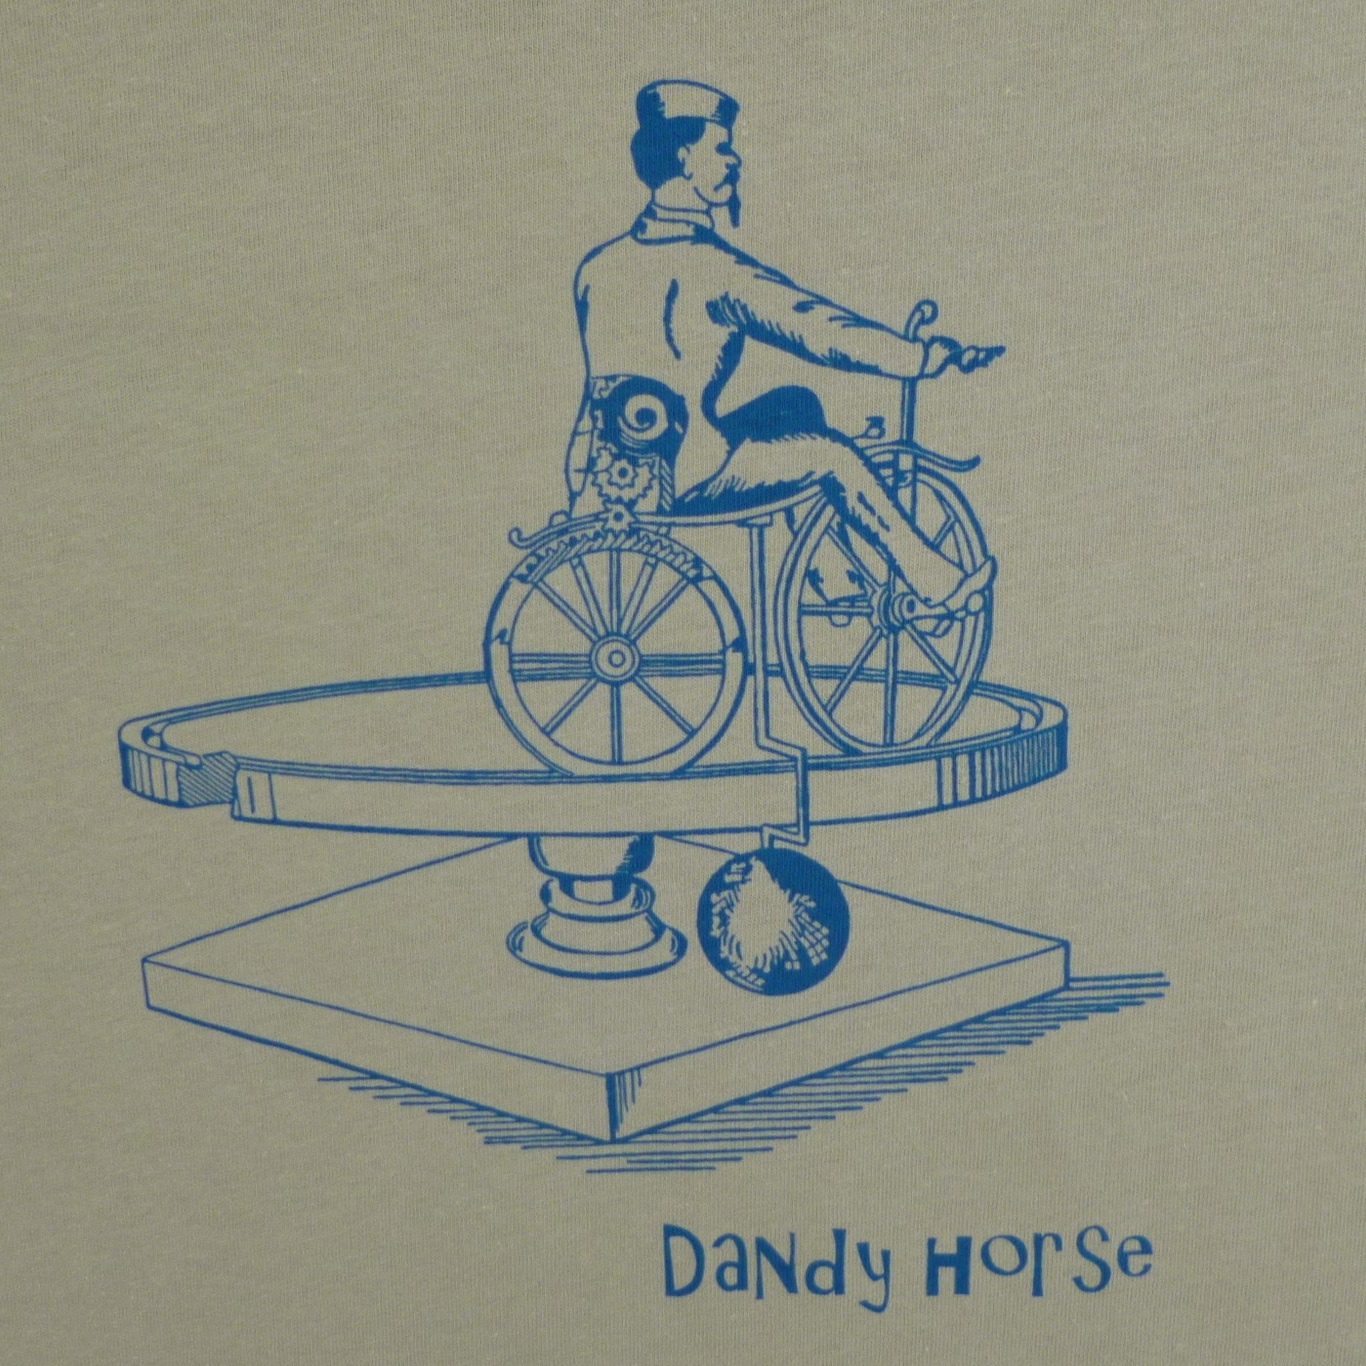 Dandy Horse Designs